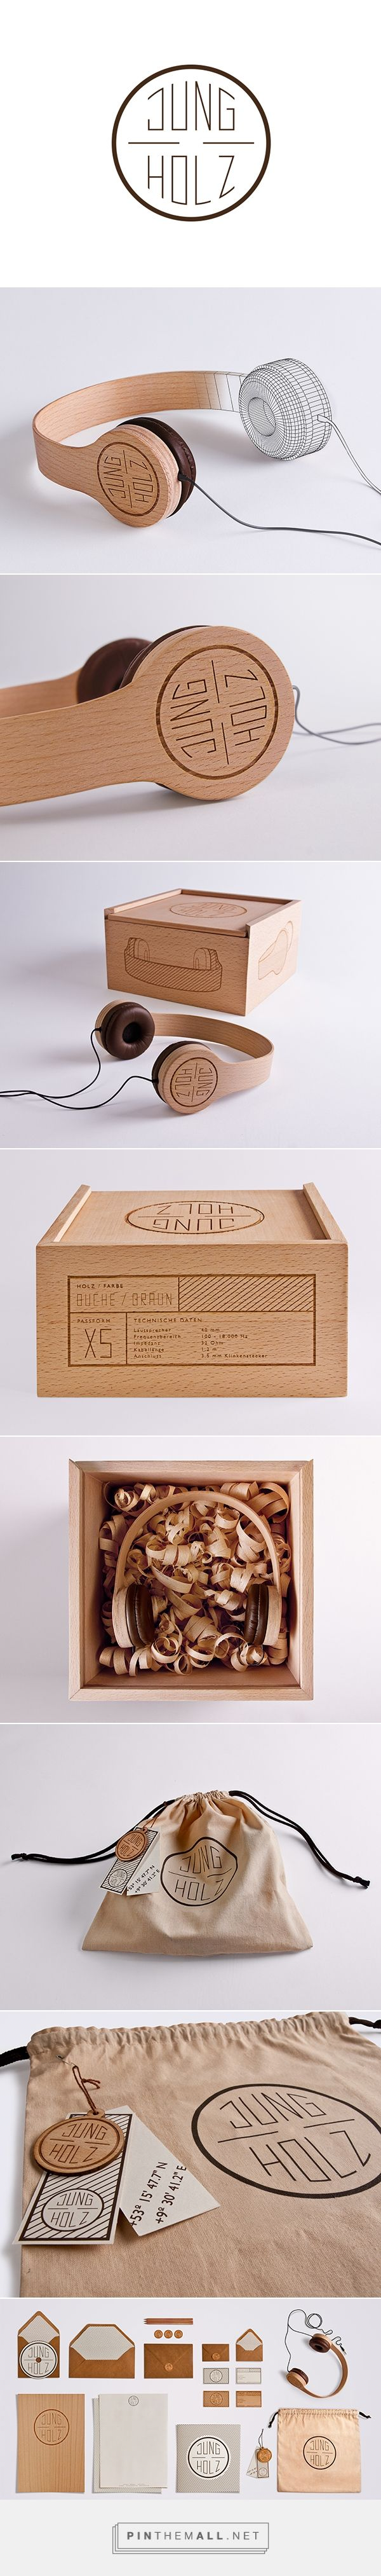 JUNGHOLZ Kopfhörer packaging on Behance by Kristina Düver curated by Packaging Diva PD. New brand created is young and sustainable named JUNGHOLZ which means Young Wood in German. The entire brand sets a statement for the environment.